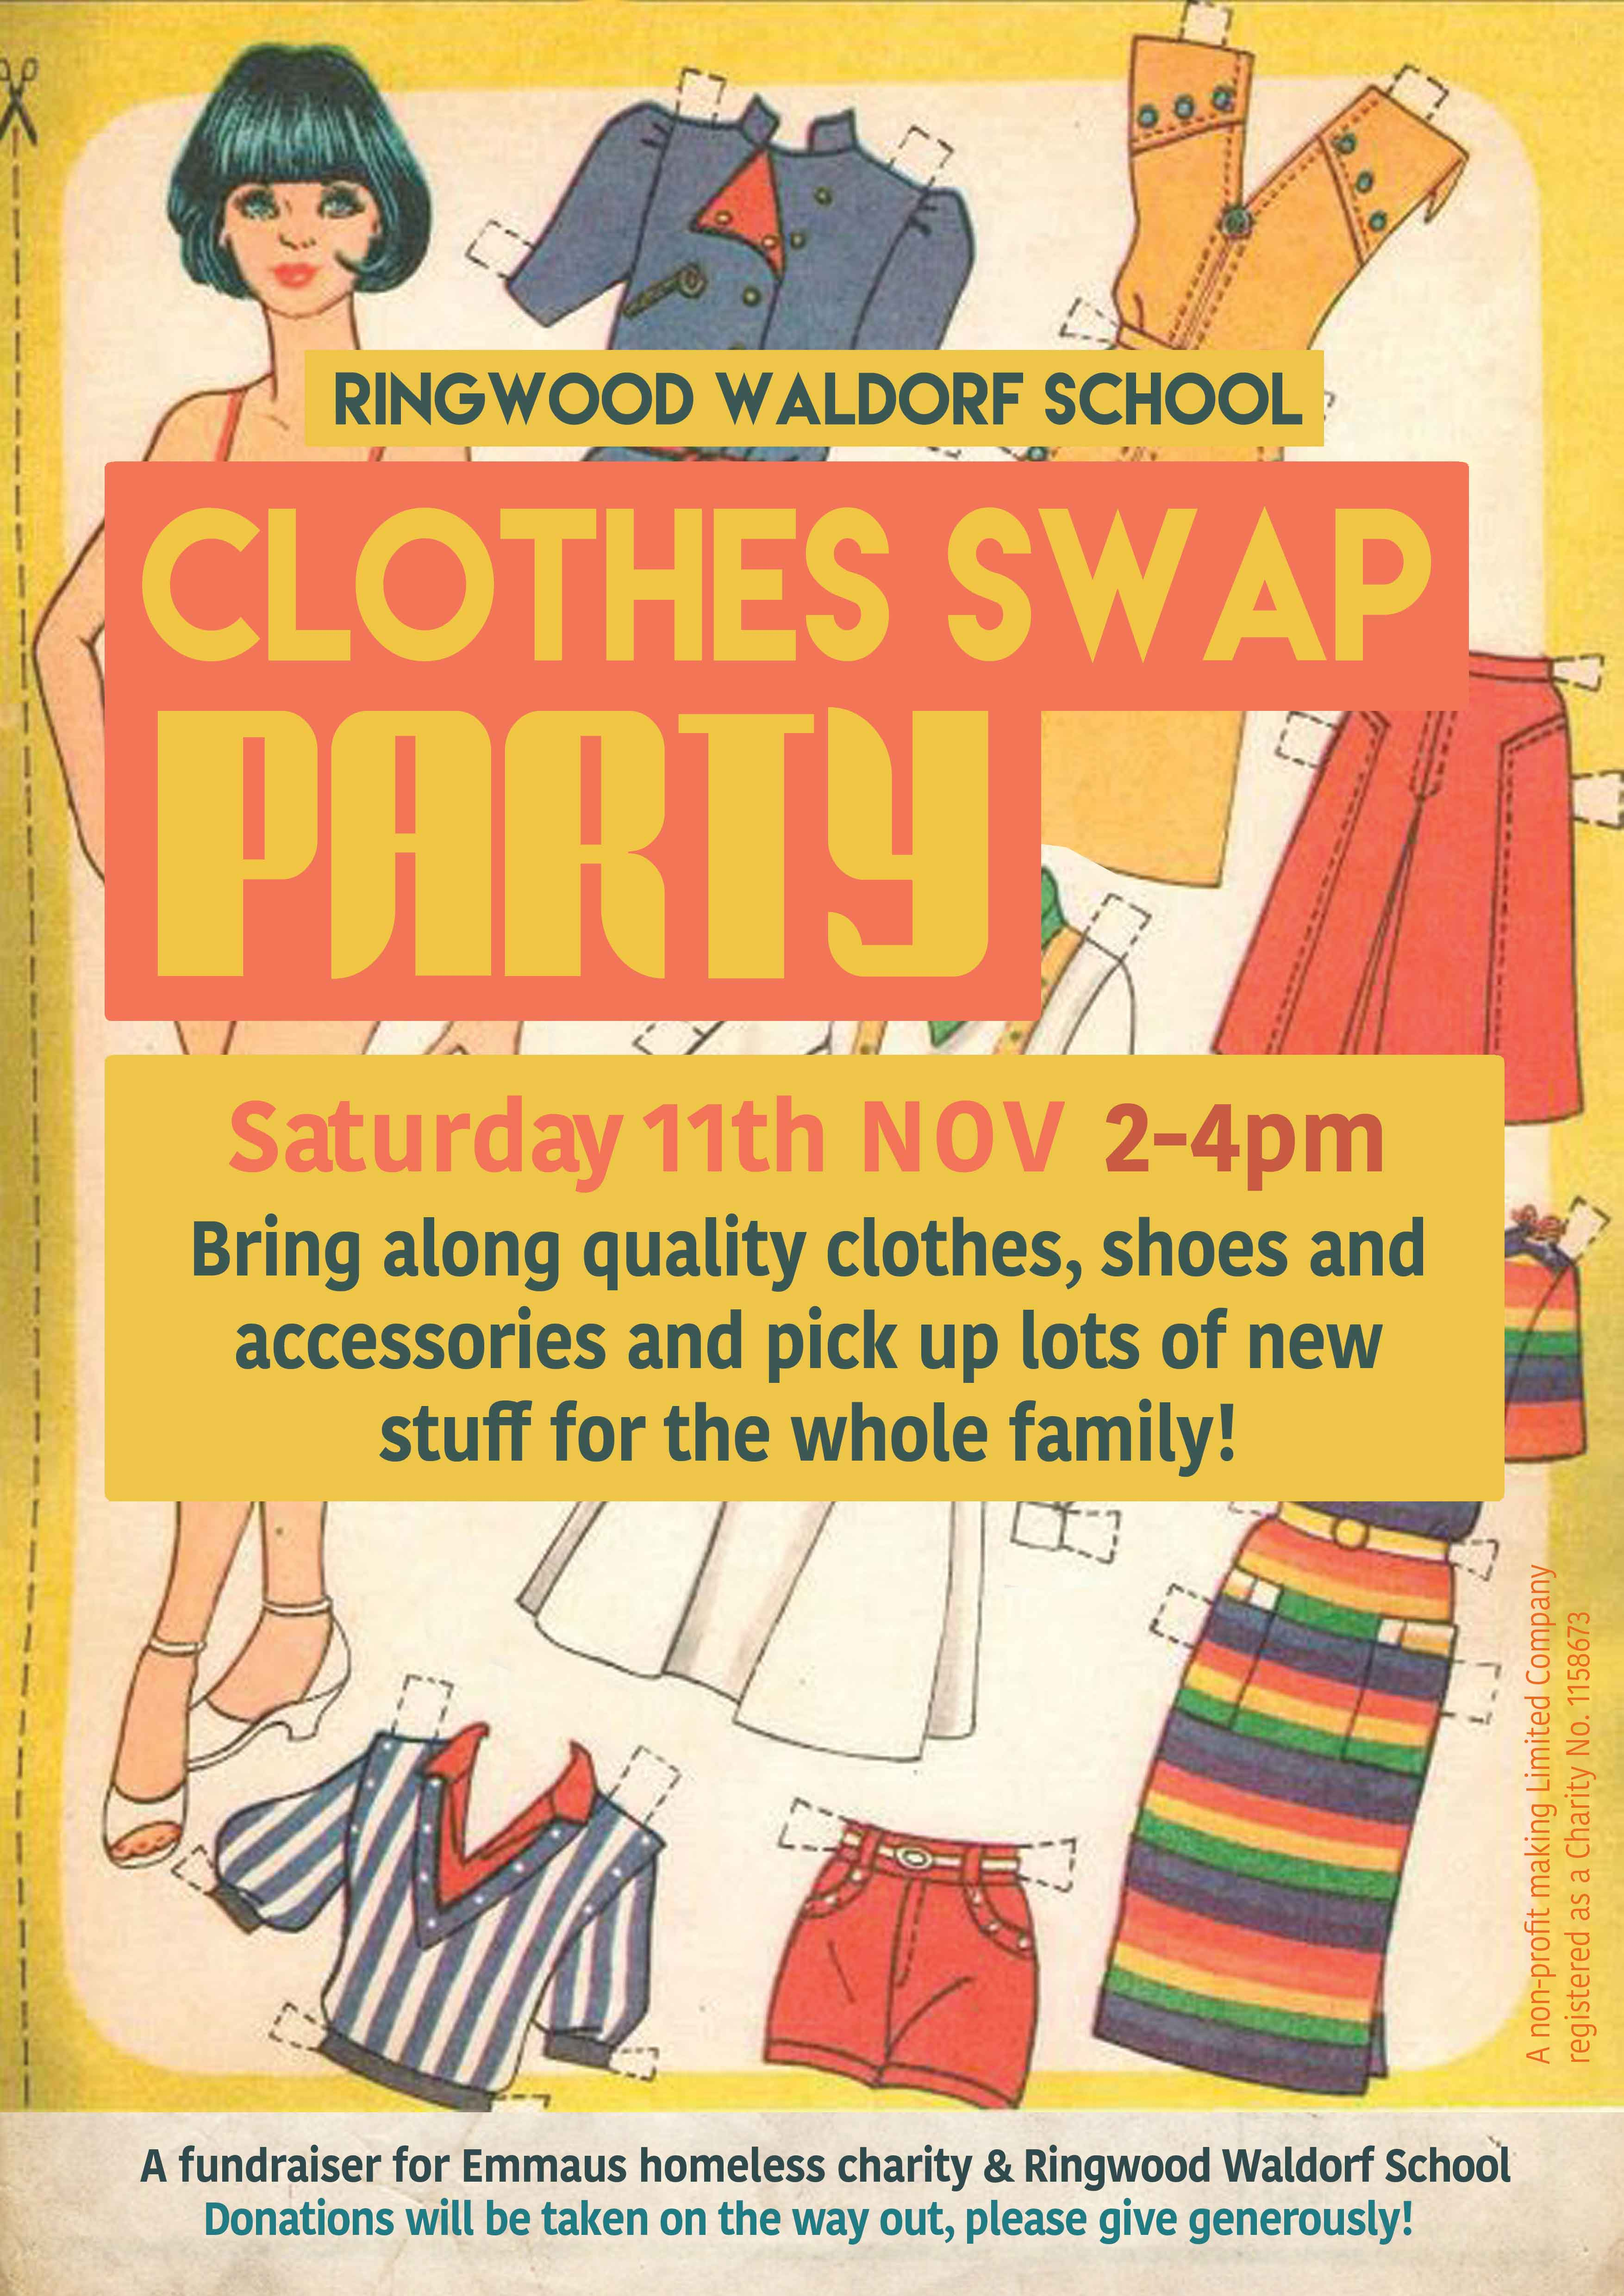 Clothes Swap Party at Ringwood Waldorf School fundraiser 11 November 2017